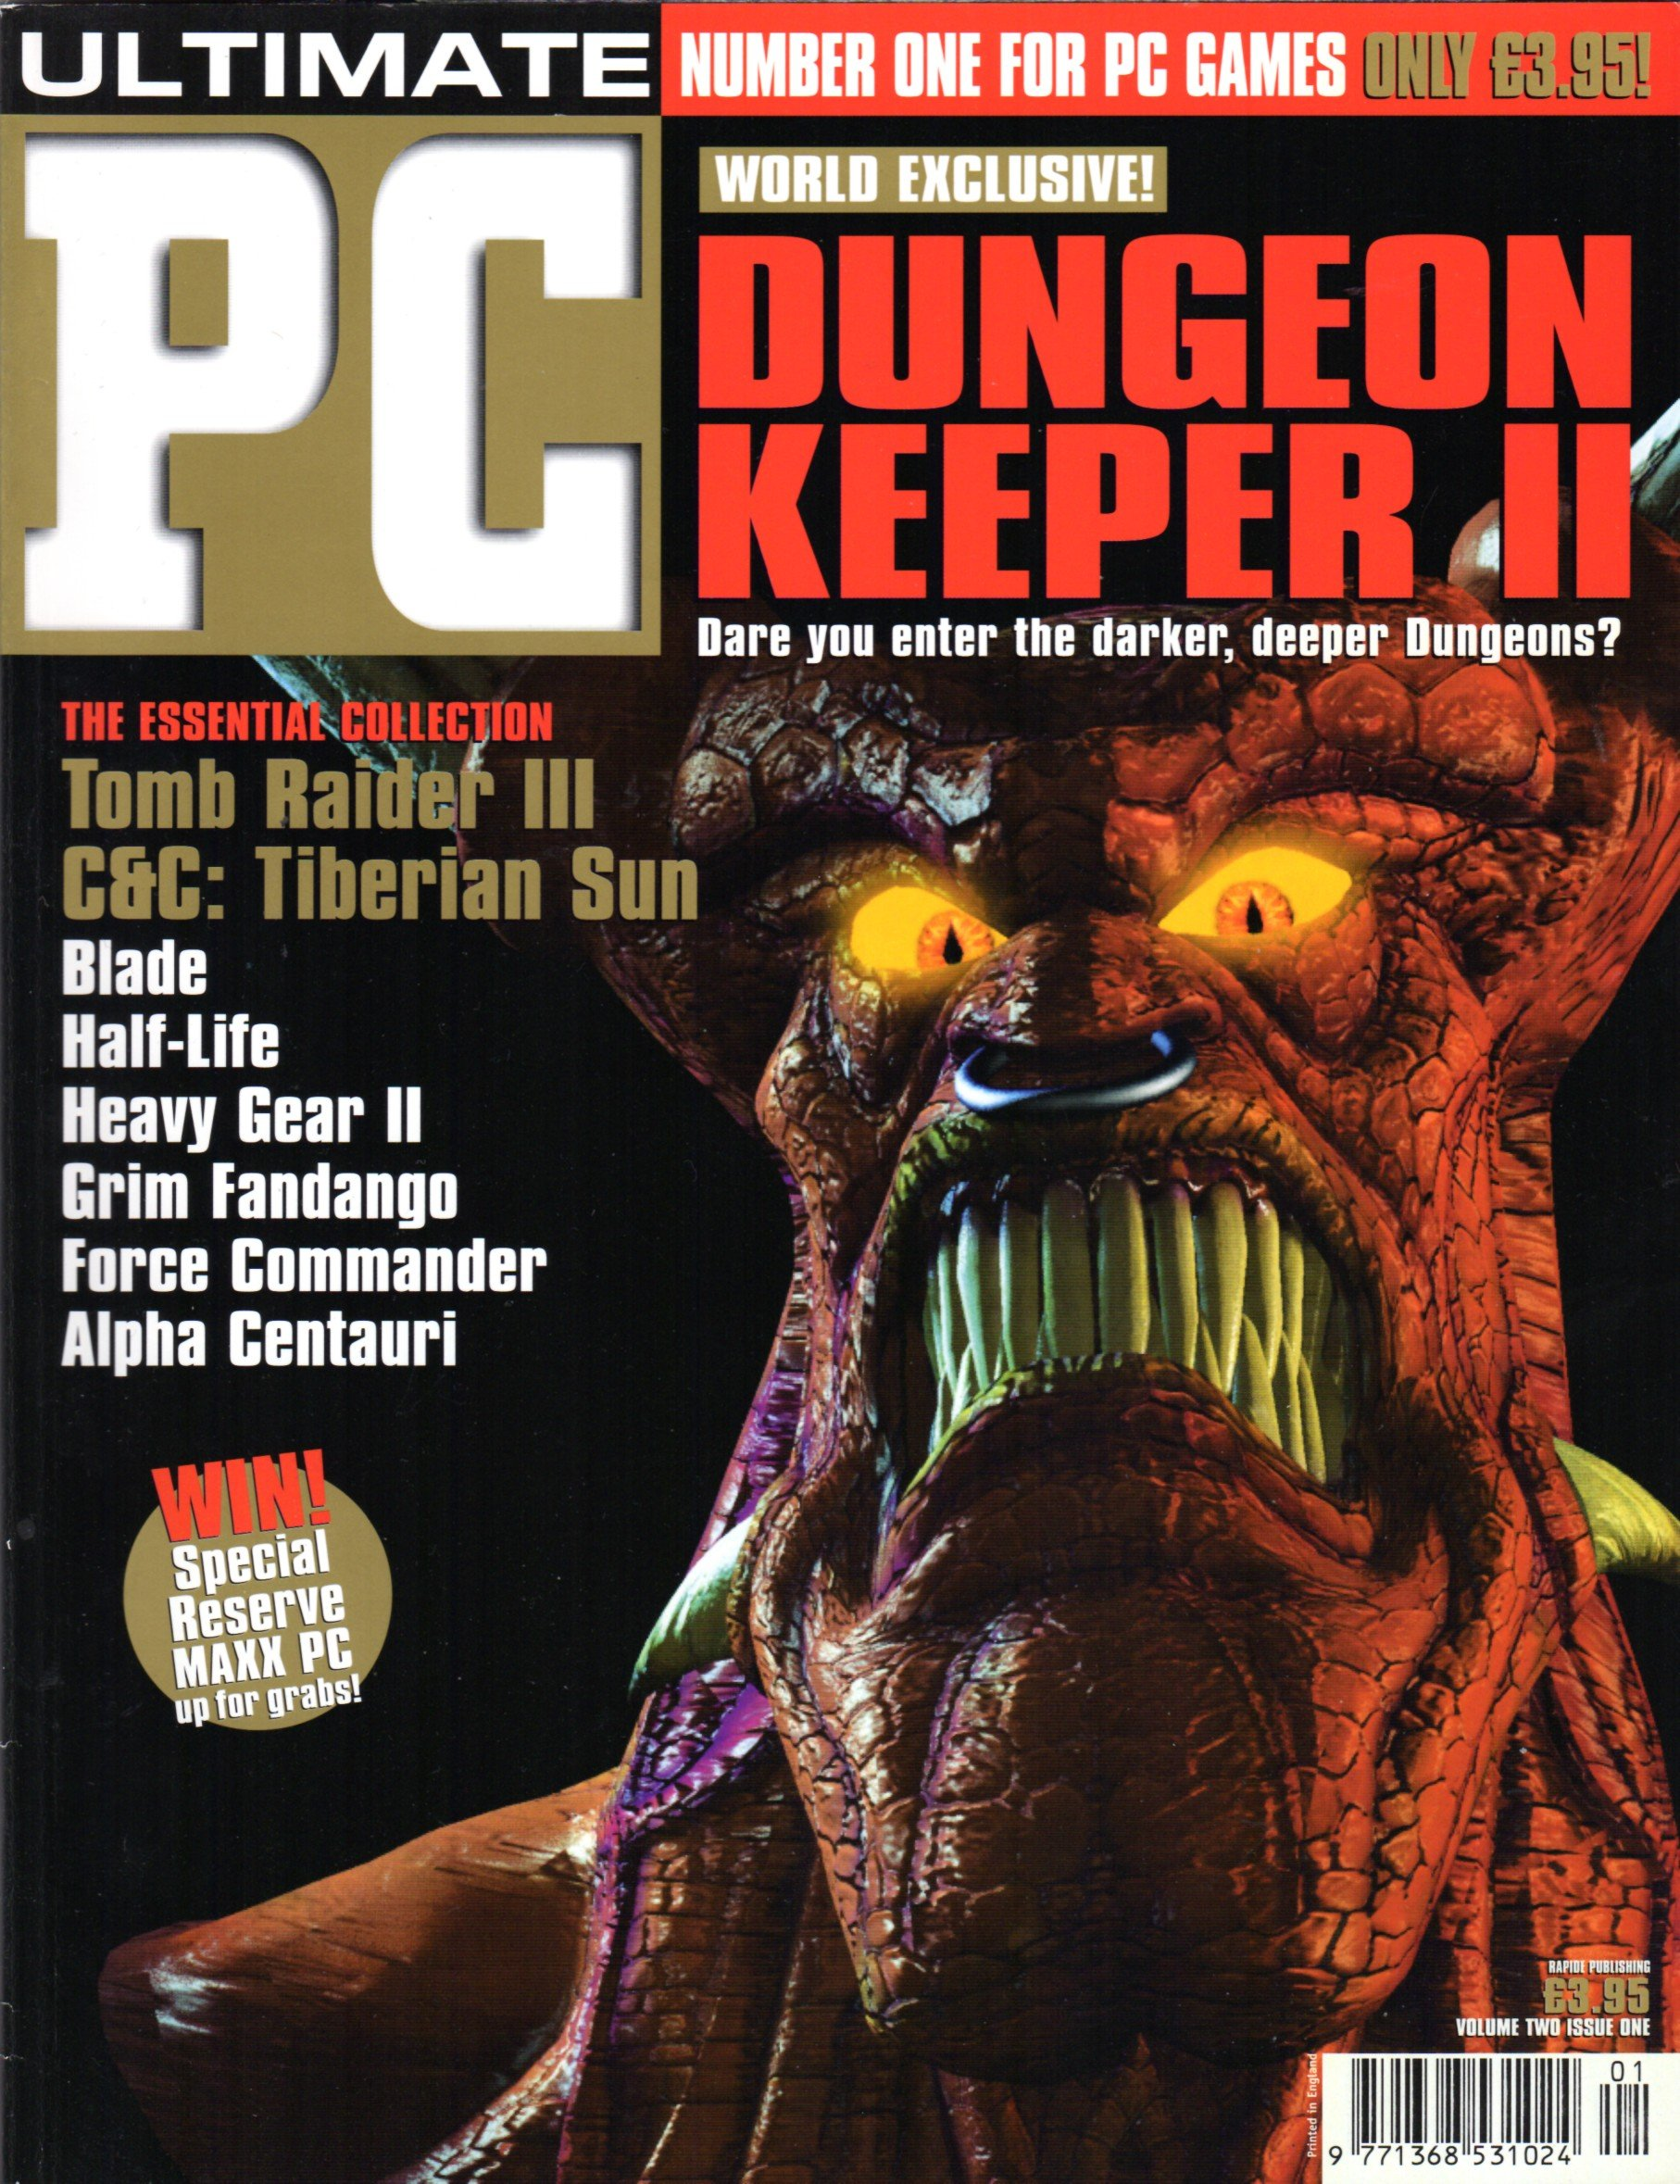 Ultimate PC Volume 2 Issue 01 (September 1998)